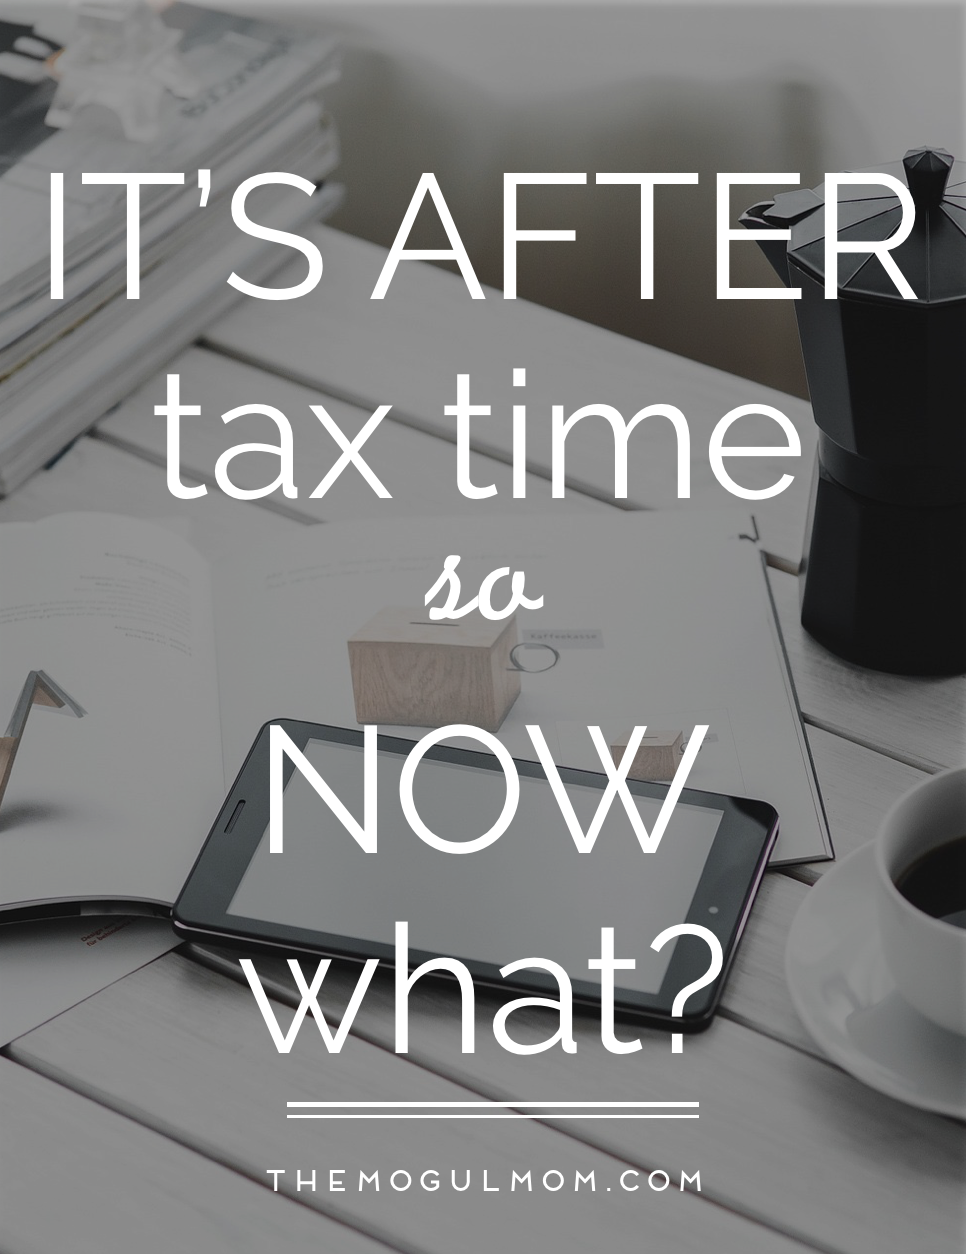 It's After Tax Time, So Now What?